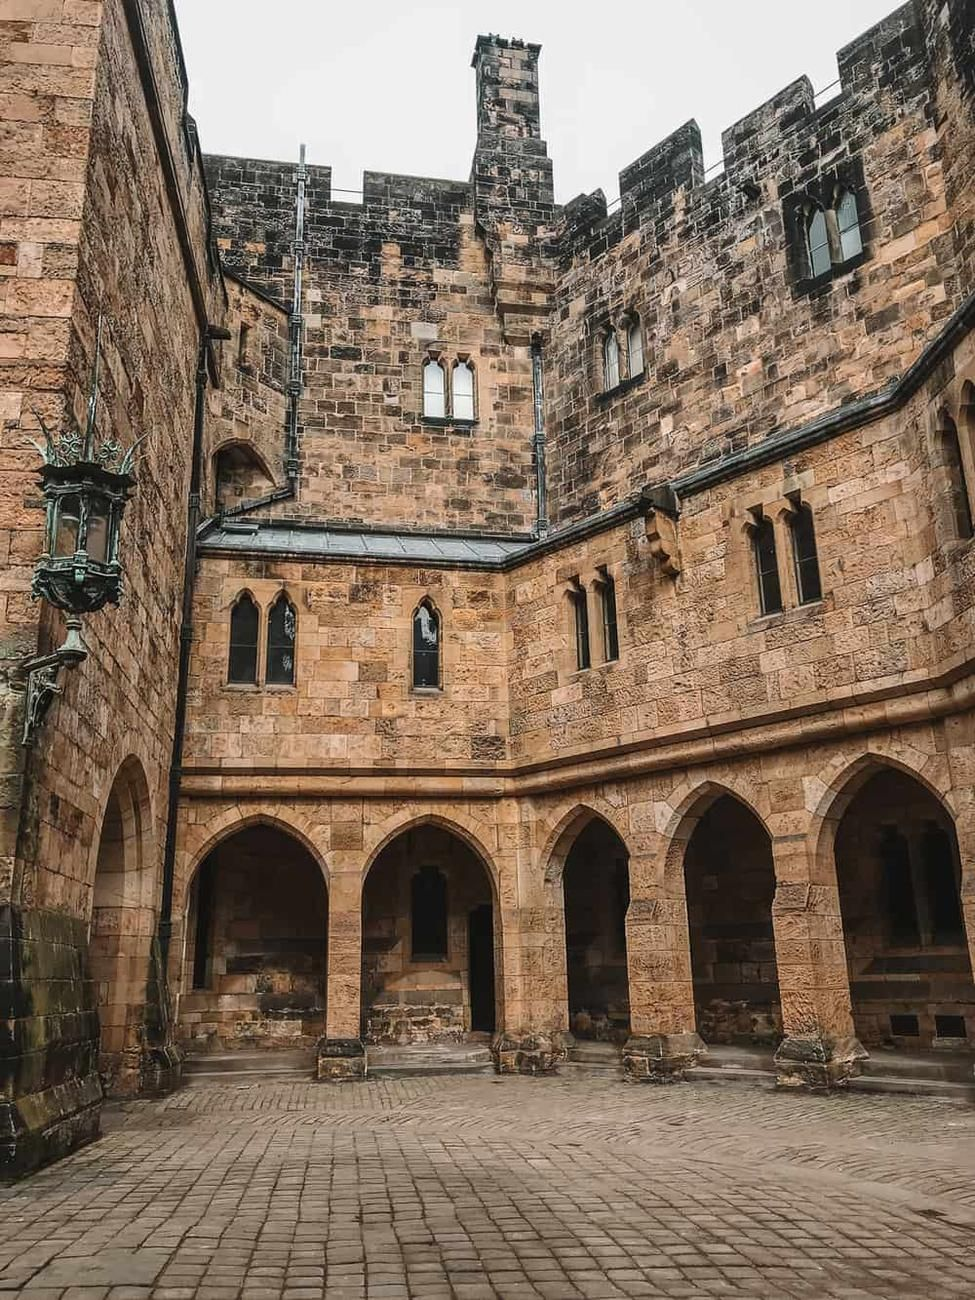 9 Magical Alnwick Castle Harry Potter Filming Locations Activities All Potterheads Must Experience Alnwick Castle Harry Potter Filming Locations Filming Locations